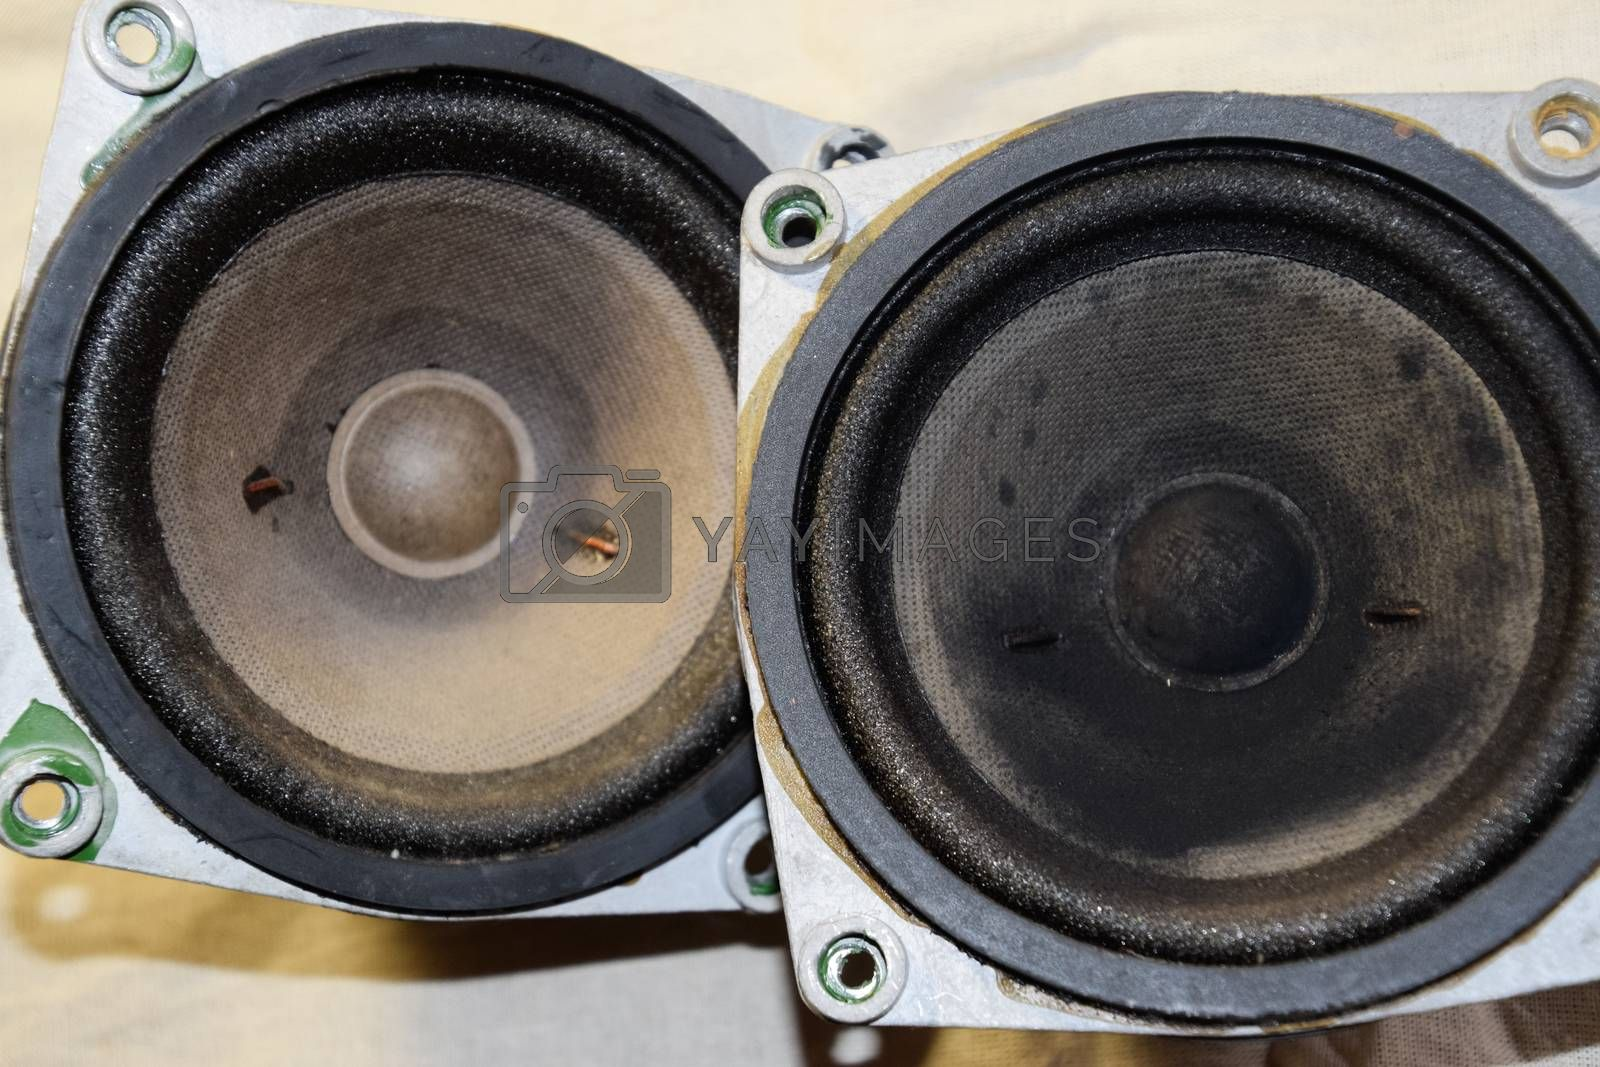 Medium-frequency speakers 20gds-3. Soviet vintage acoustics, elements of a music column.